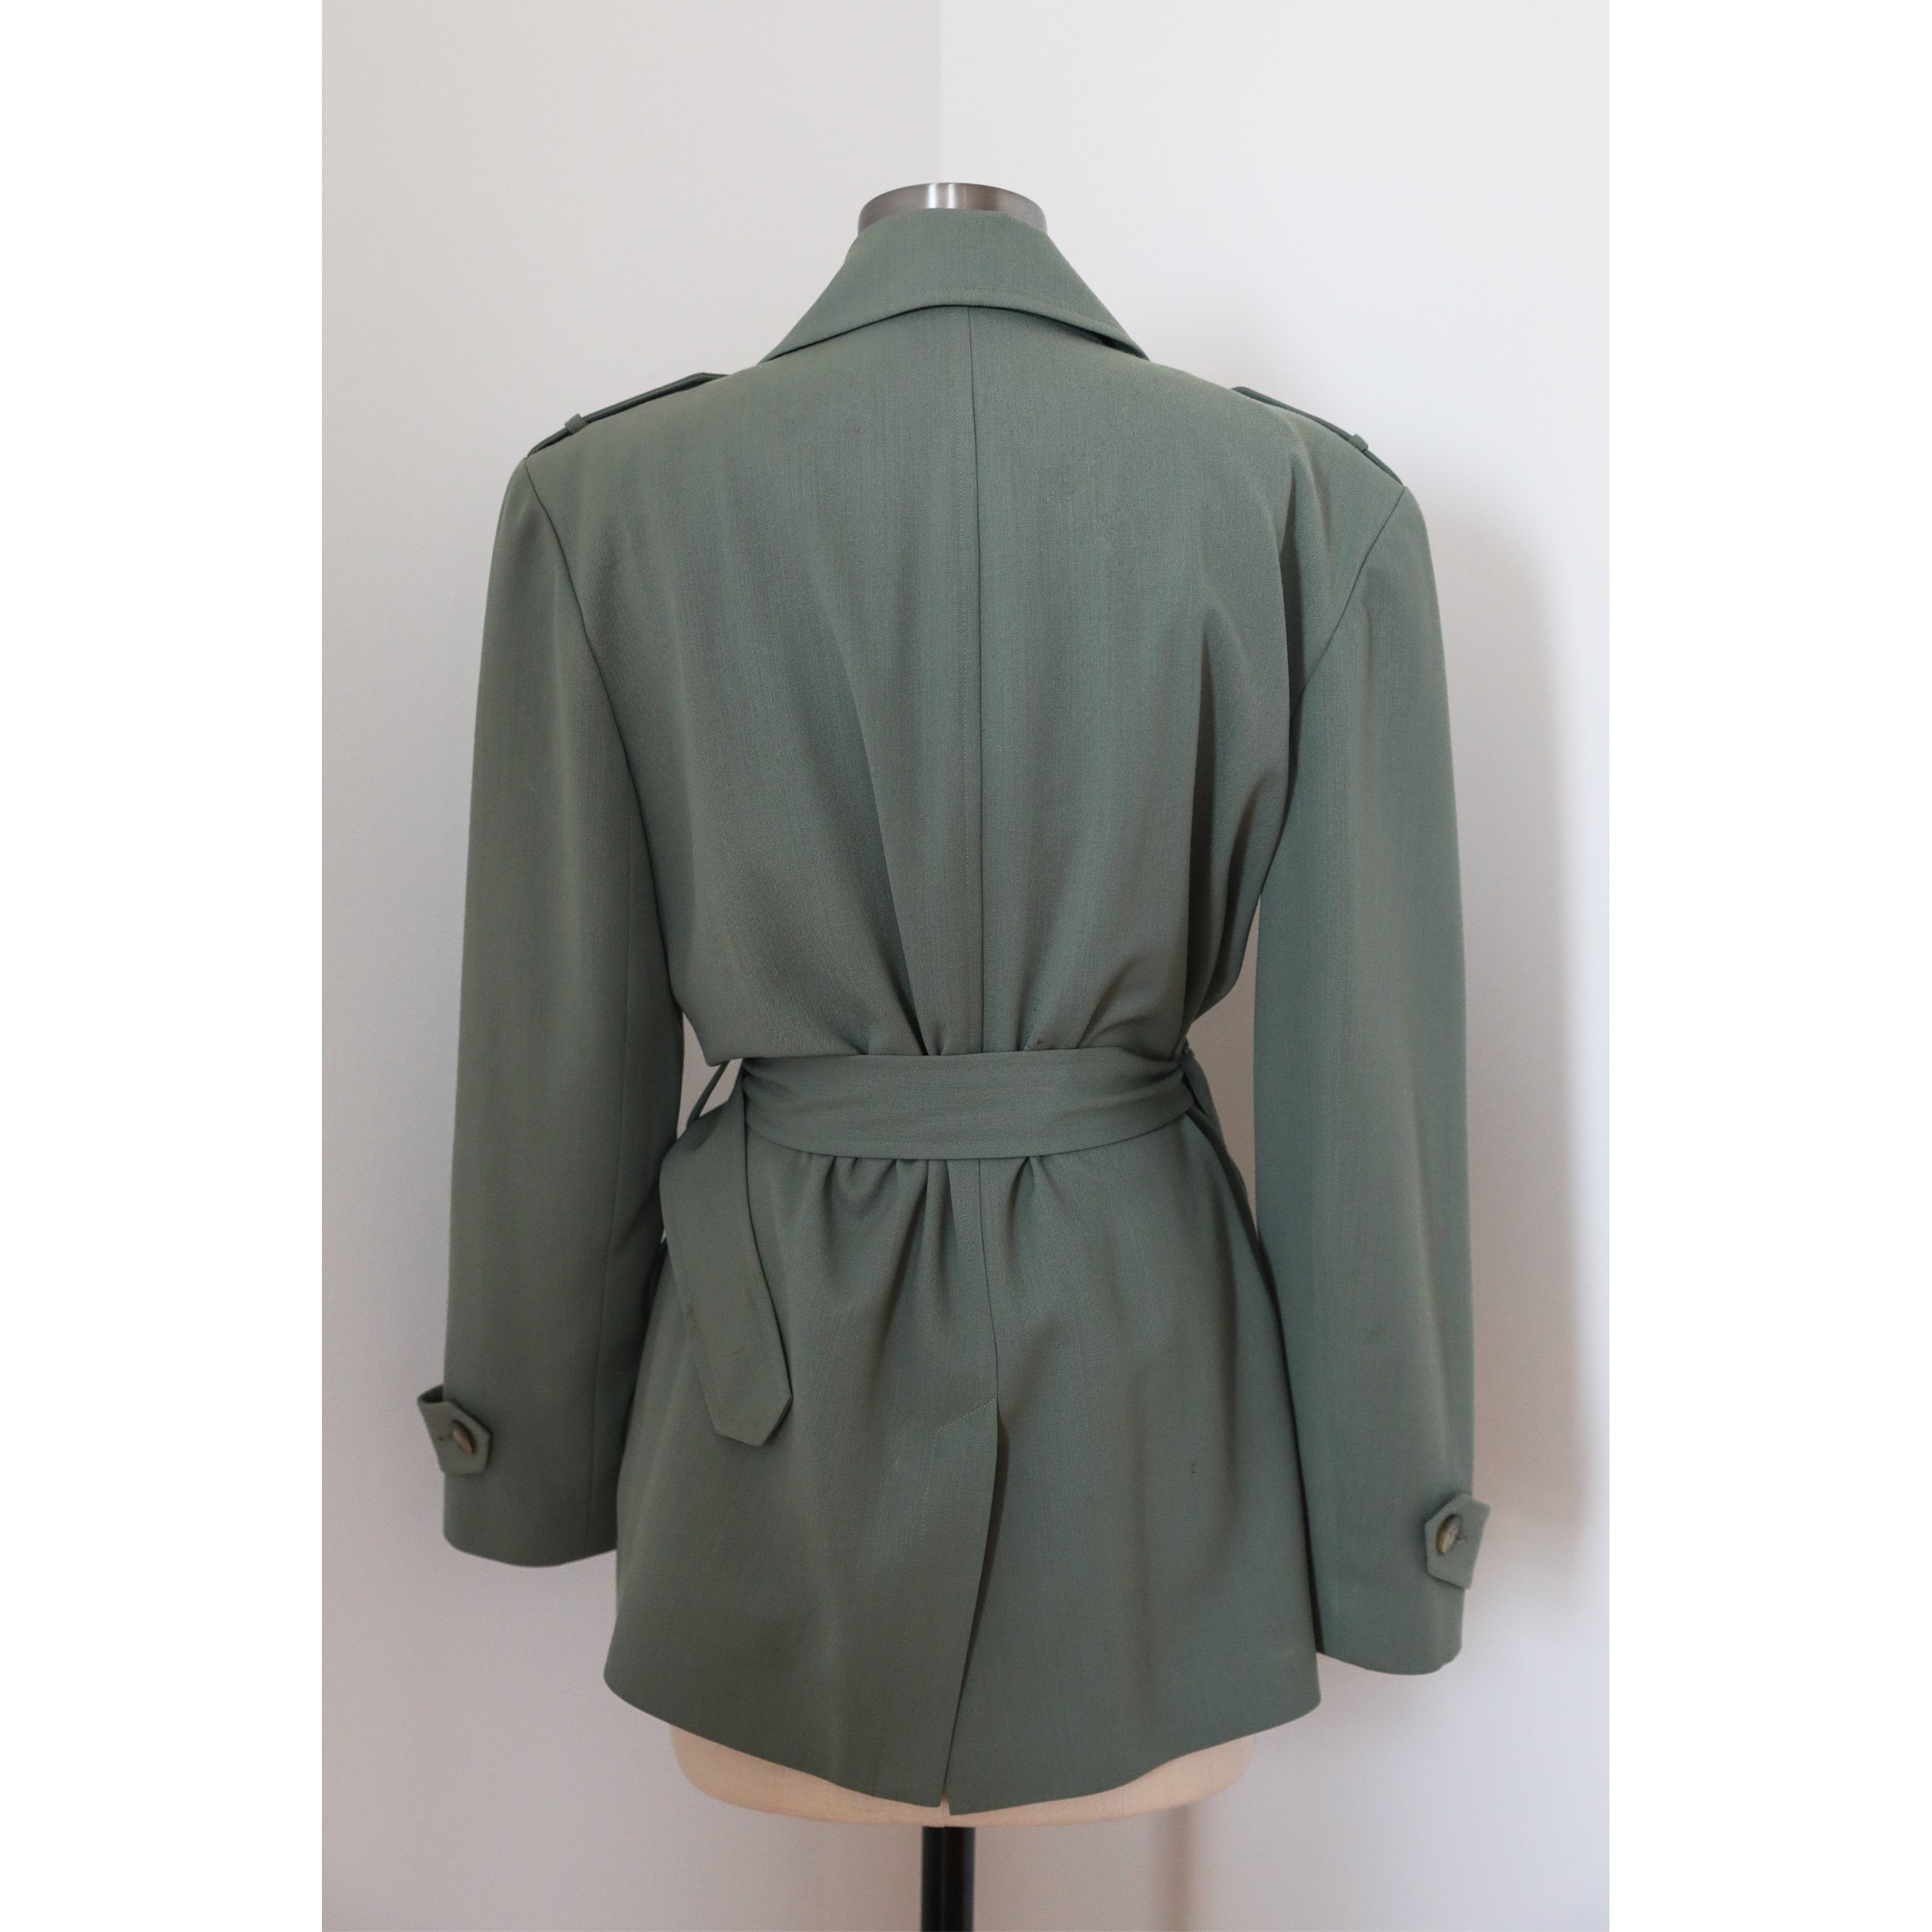 Olive Green Military Trench